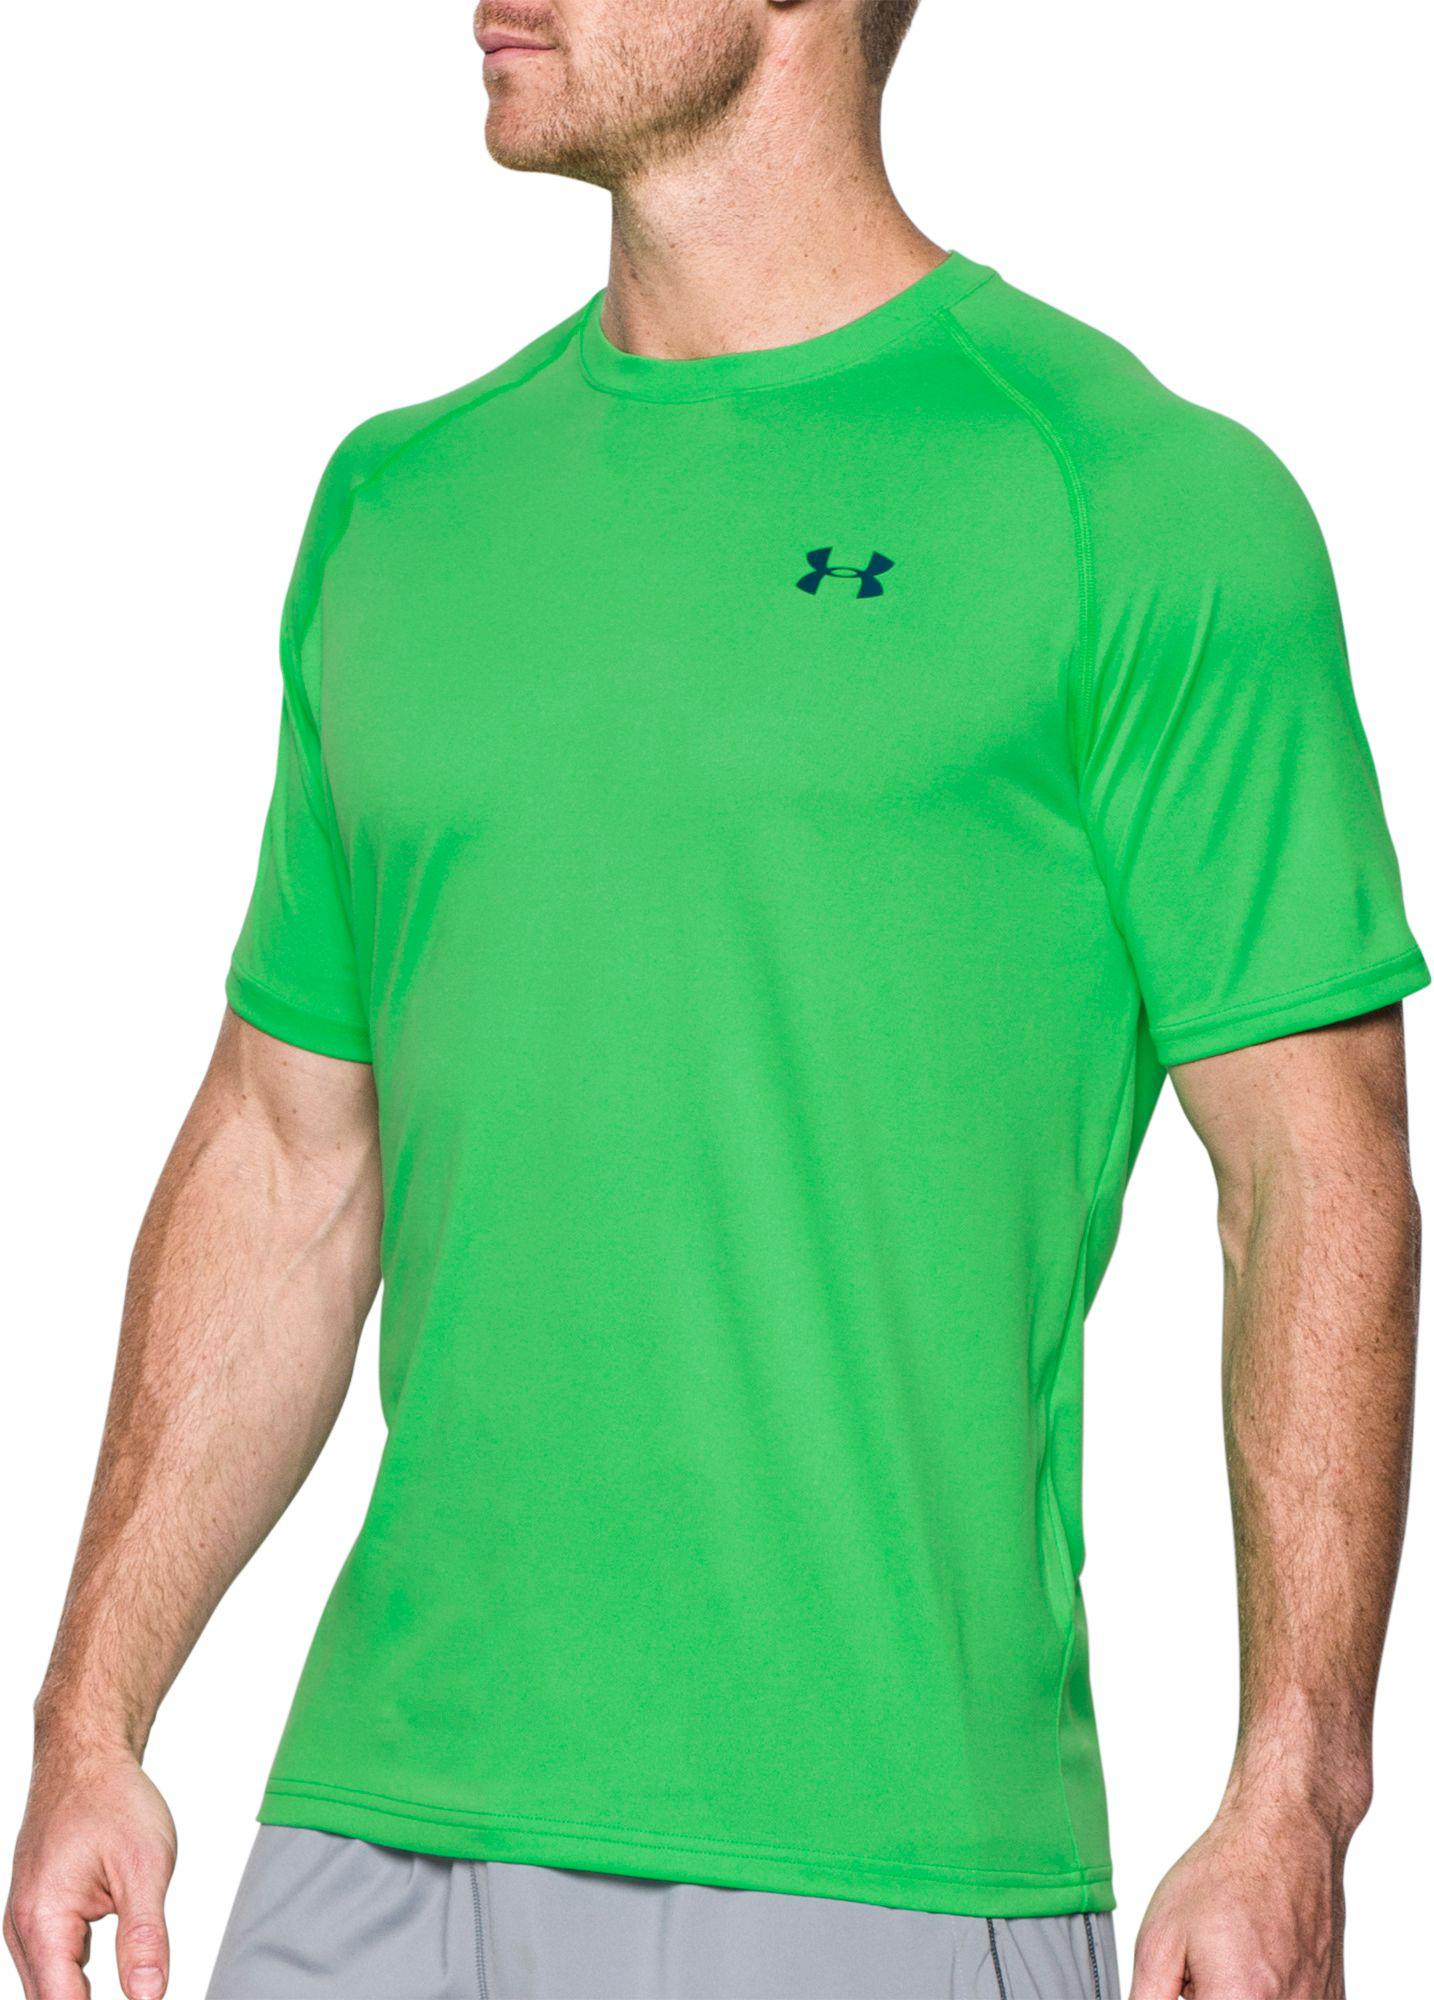 a59af37e Lyst - Under Armour Tech Ii T-shirt in Green for Men